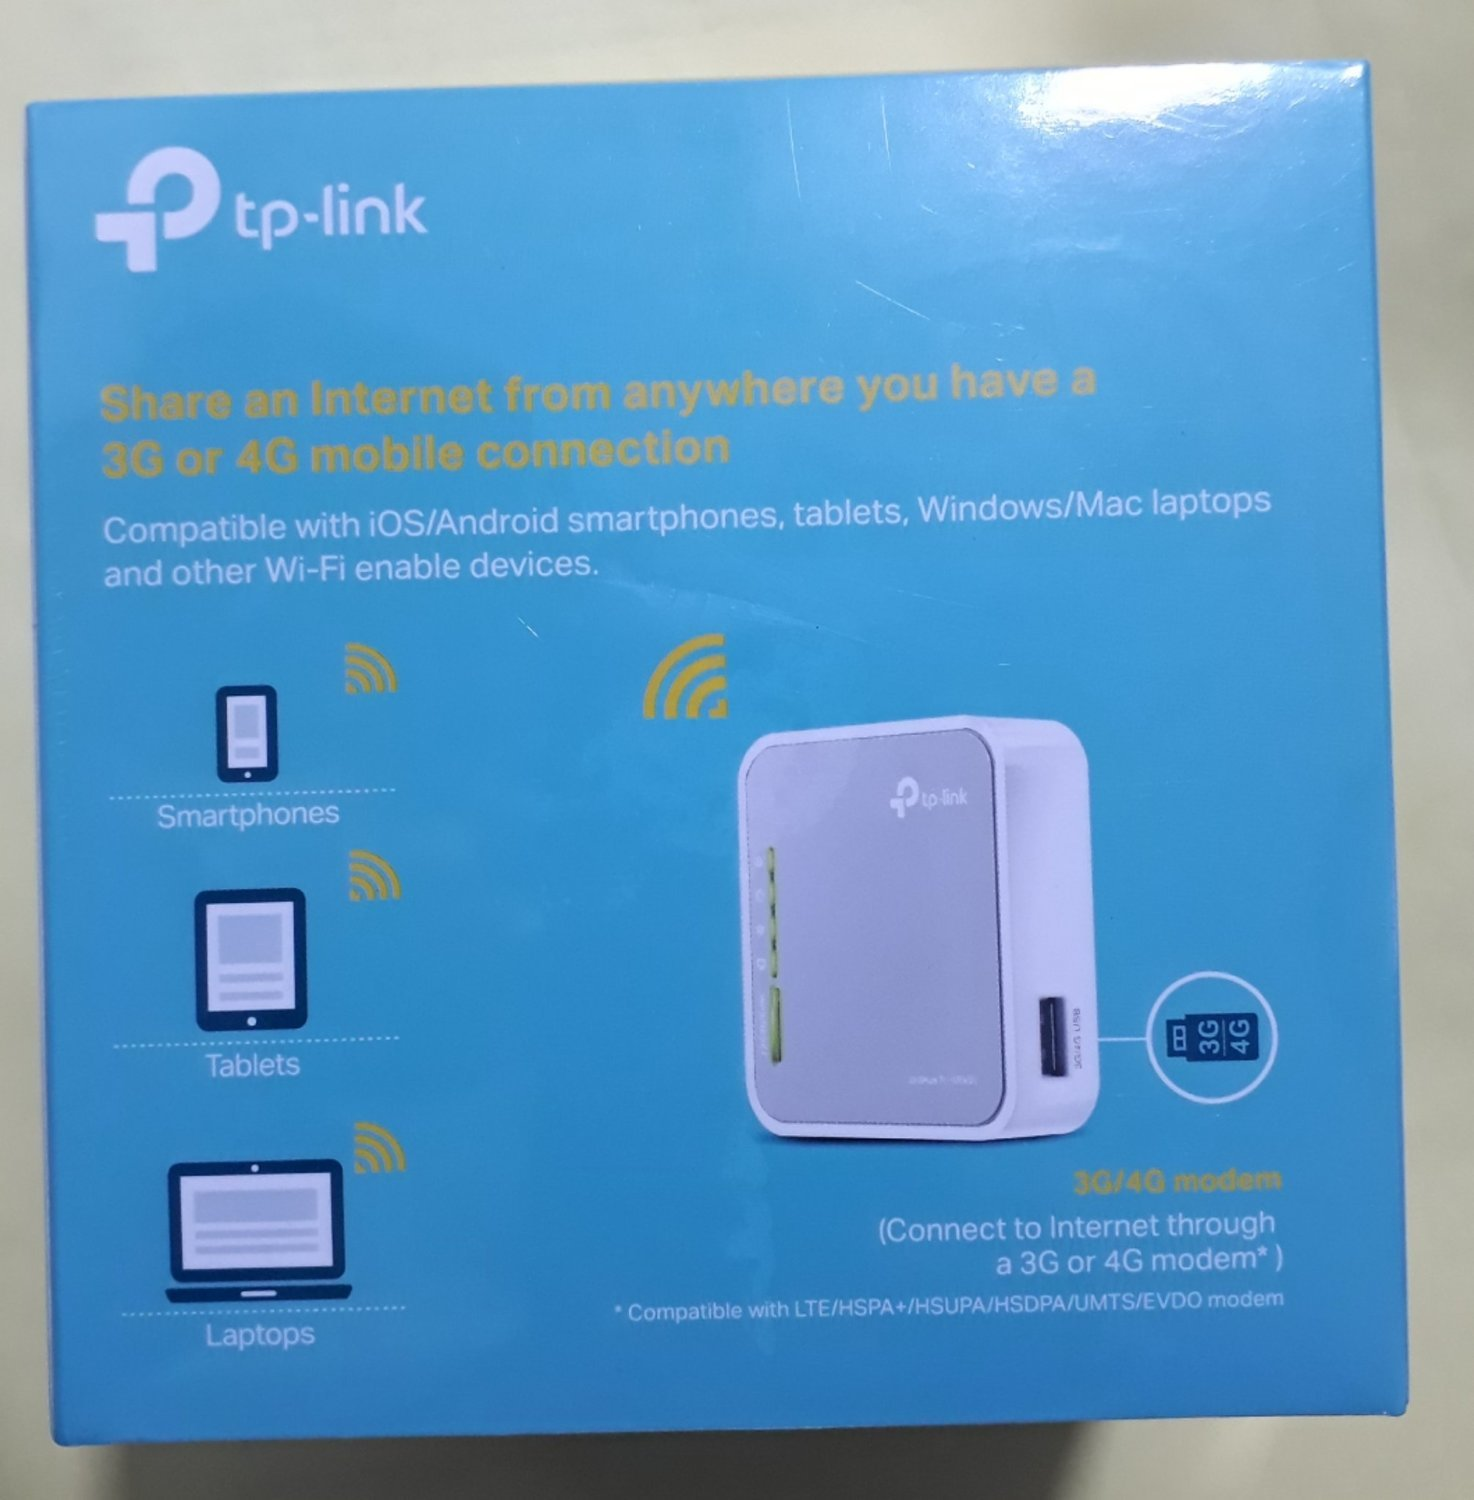 TP-Link MR3020 Wireless Router, WAN, 3G/4G, Rs 1177